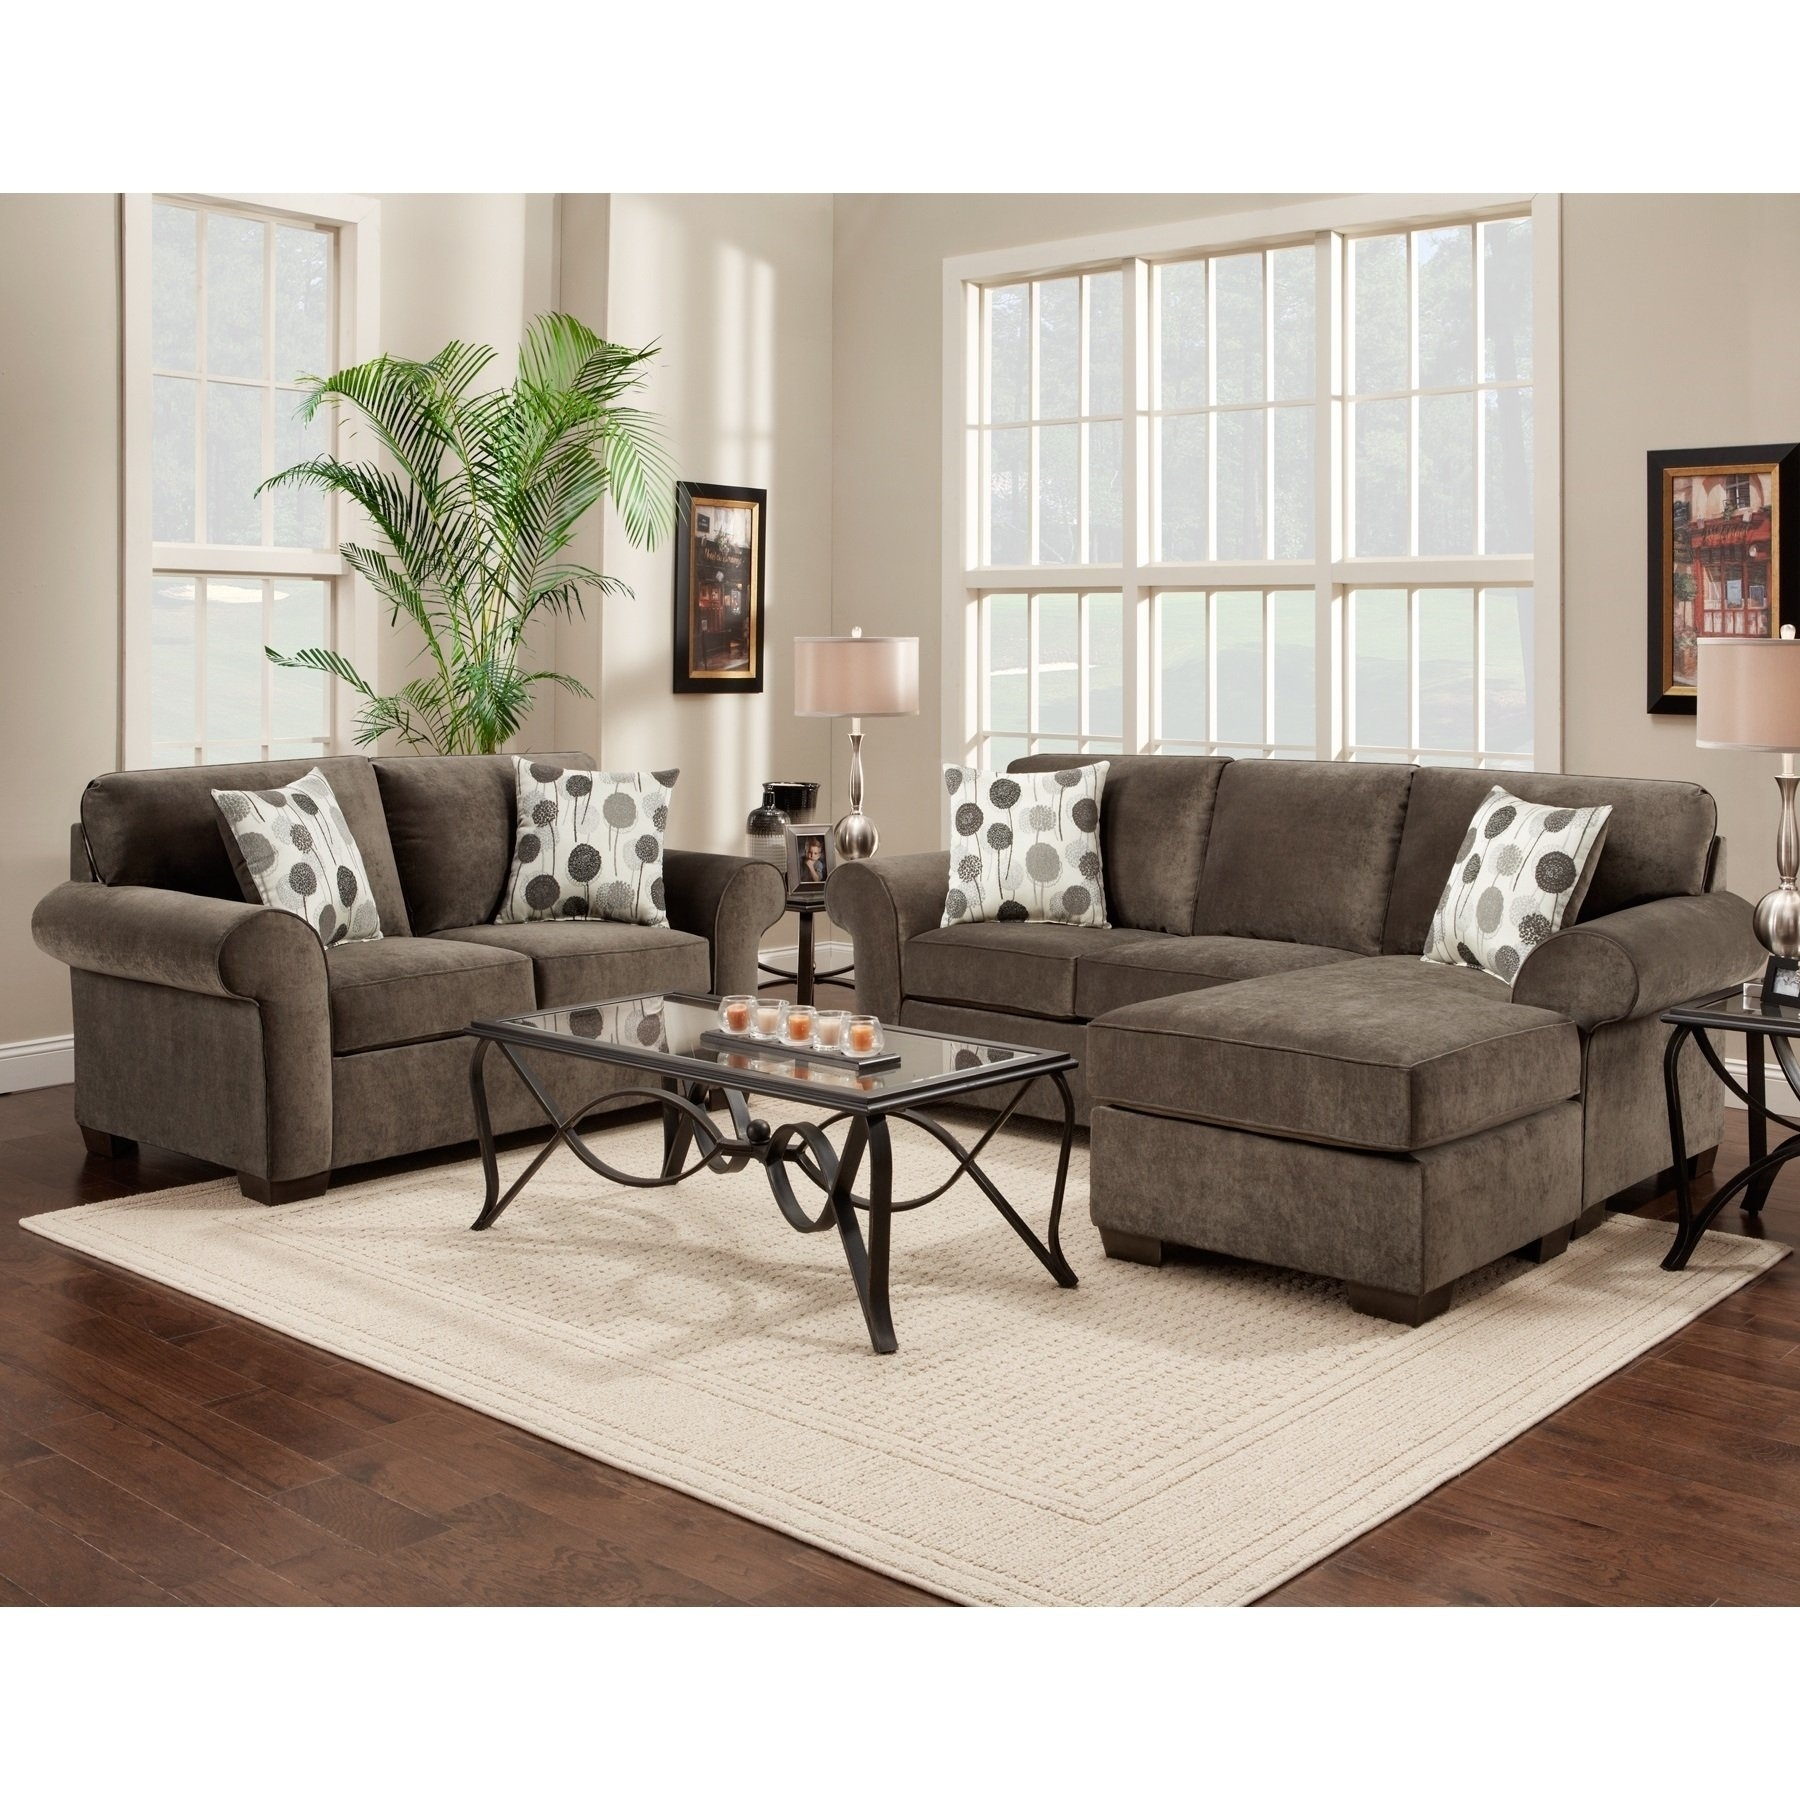 Loveseat Sectional | Whitecraftwoodard Mona Wicker Right Arm For Taron 3 Piece Power Reclining Sectionals With Left Facing Console Loveseat (View 10 of 25)